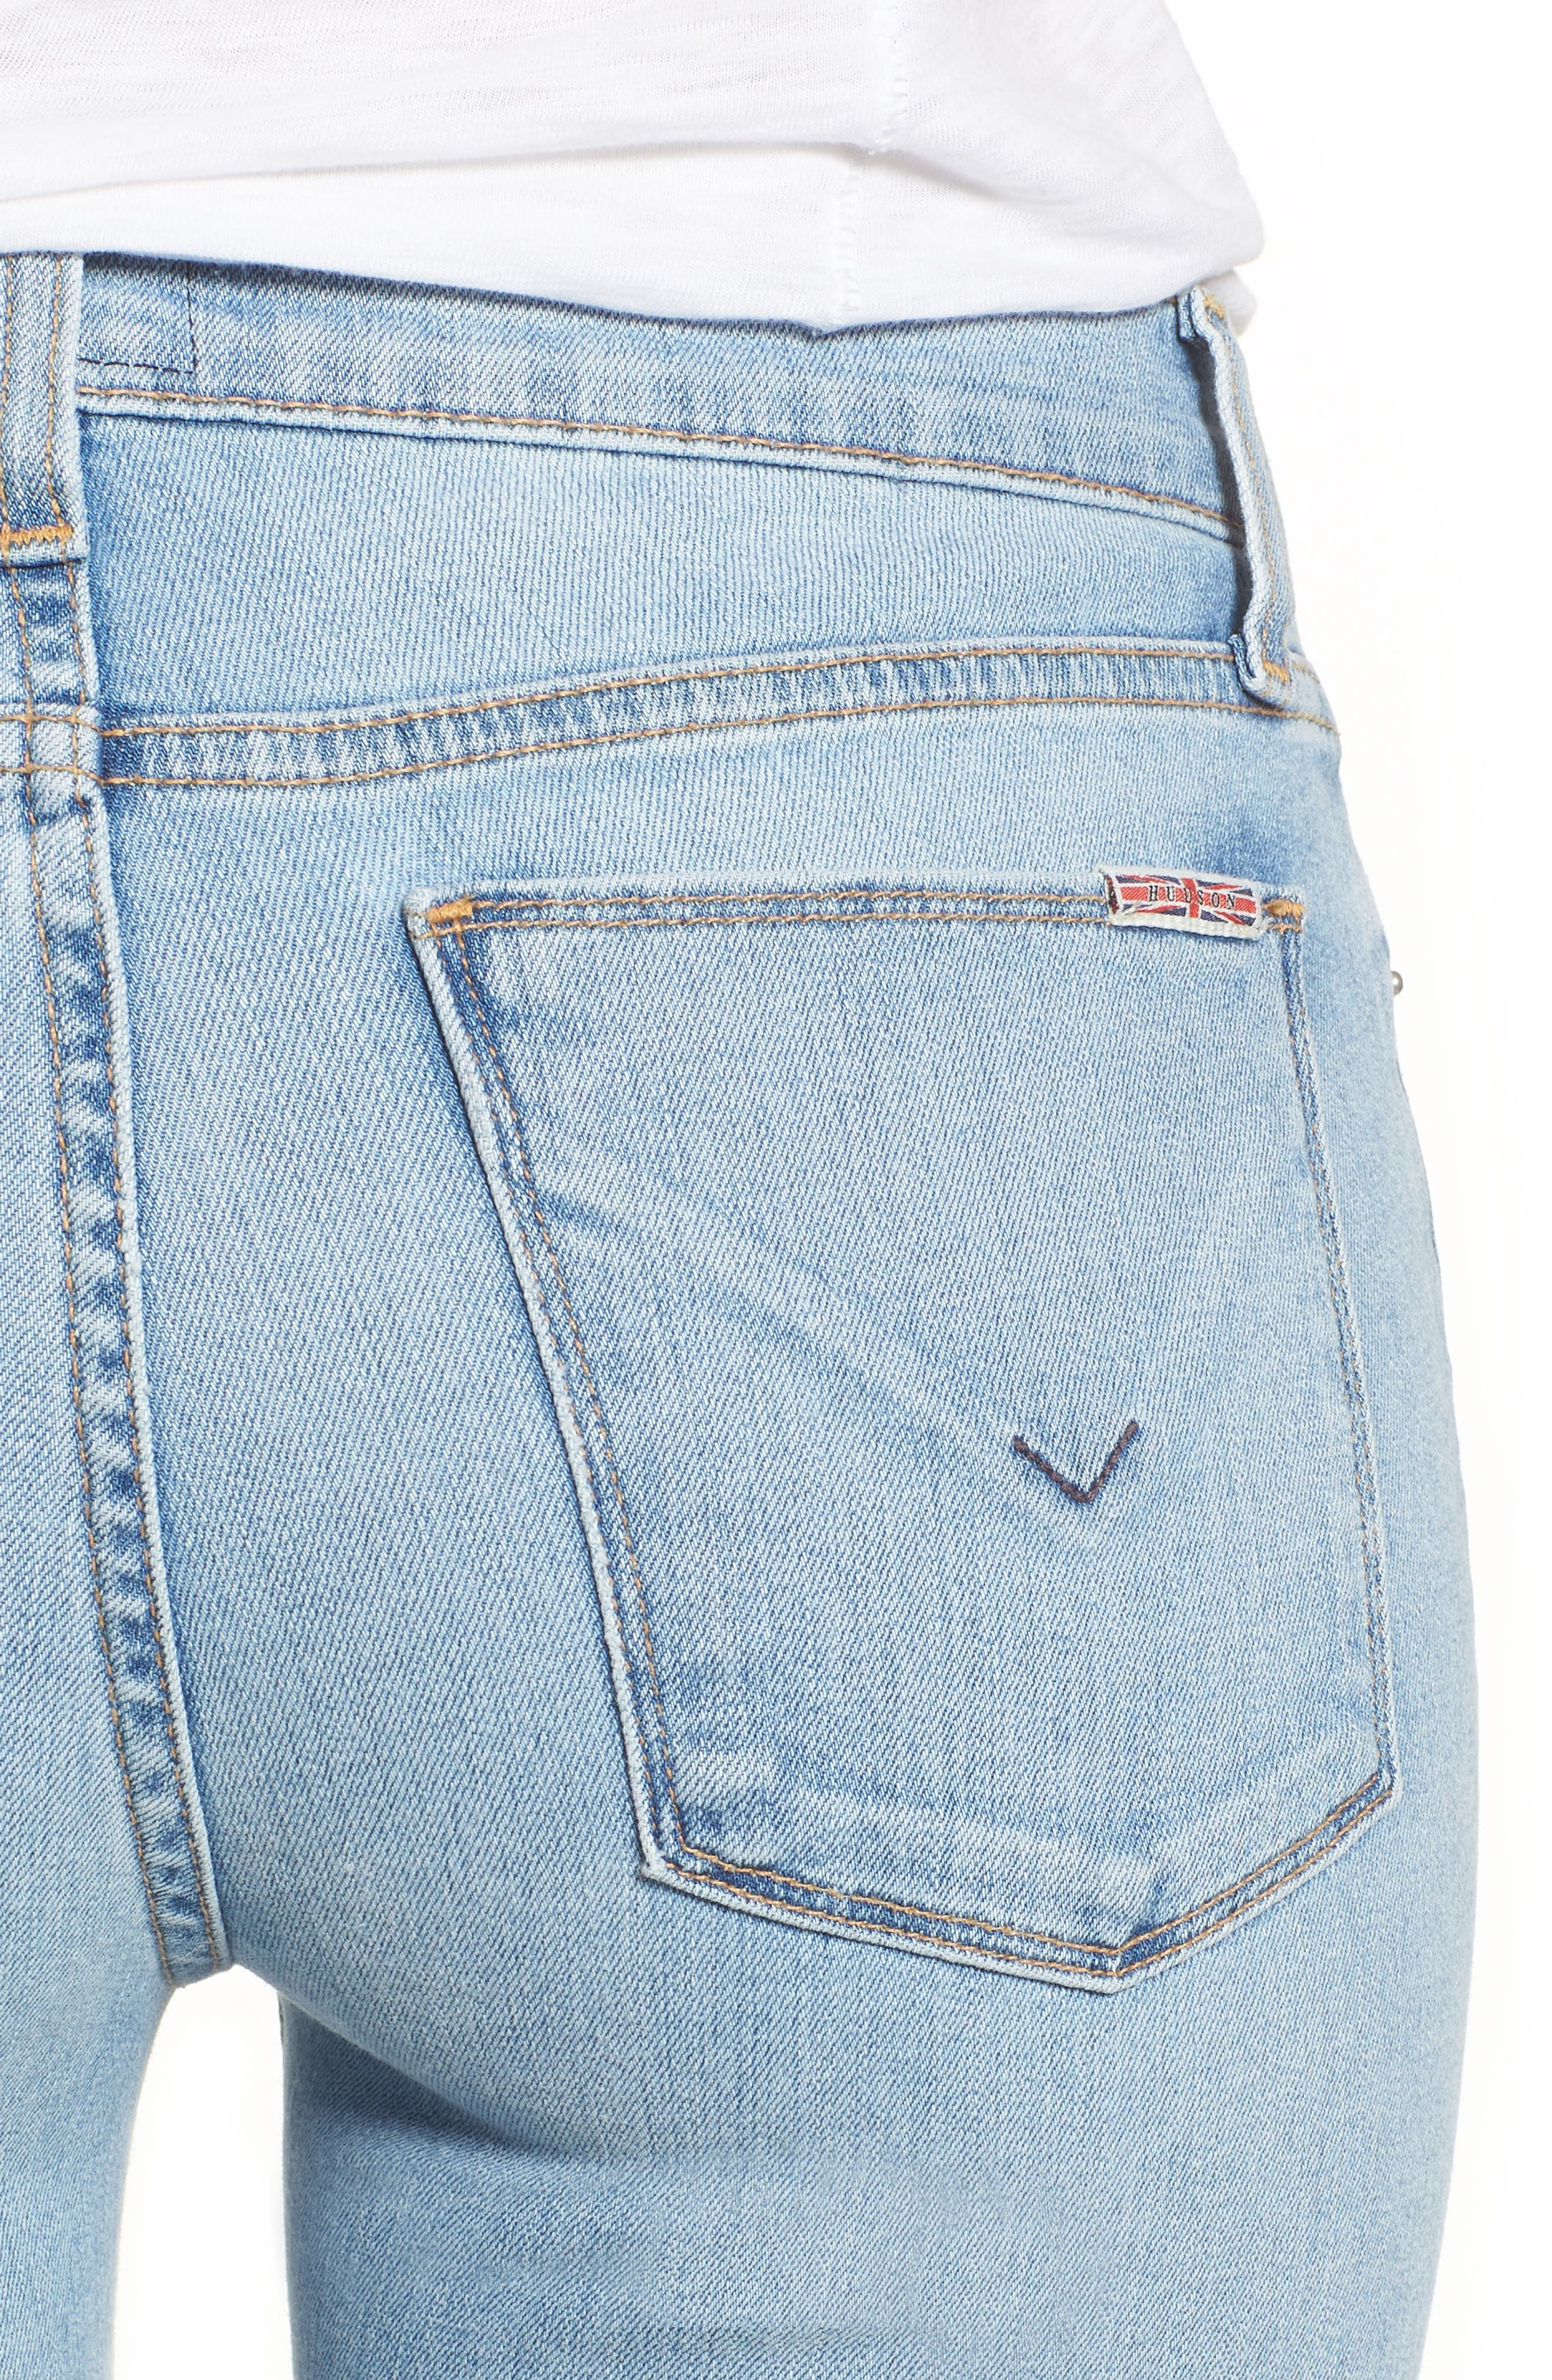 Tally Cuffed Crop Skinny Jeans,                             Alternate thumbnail 13, color,